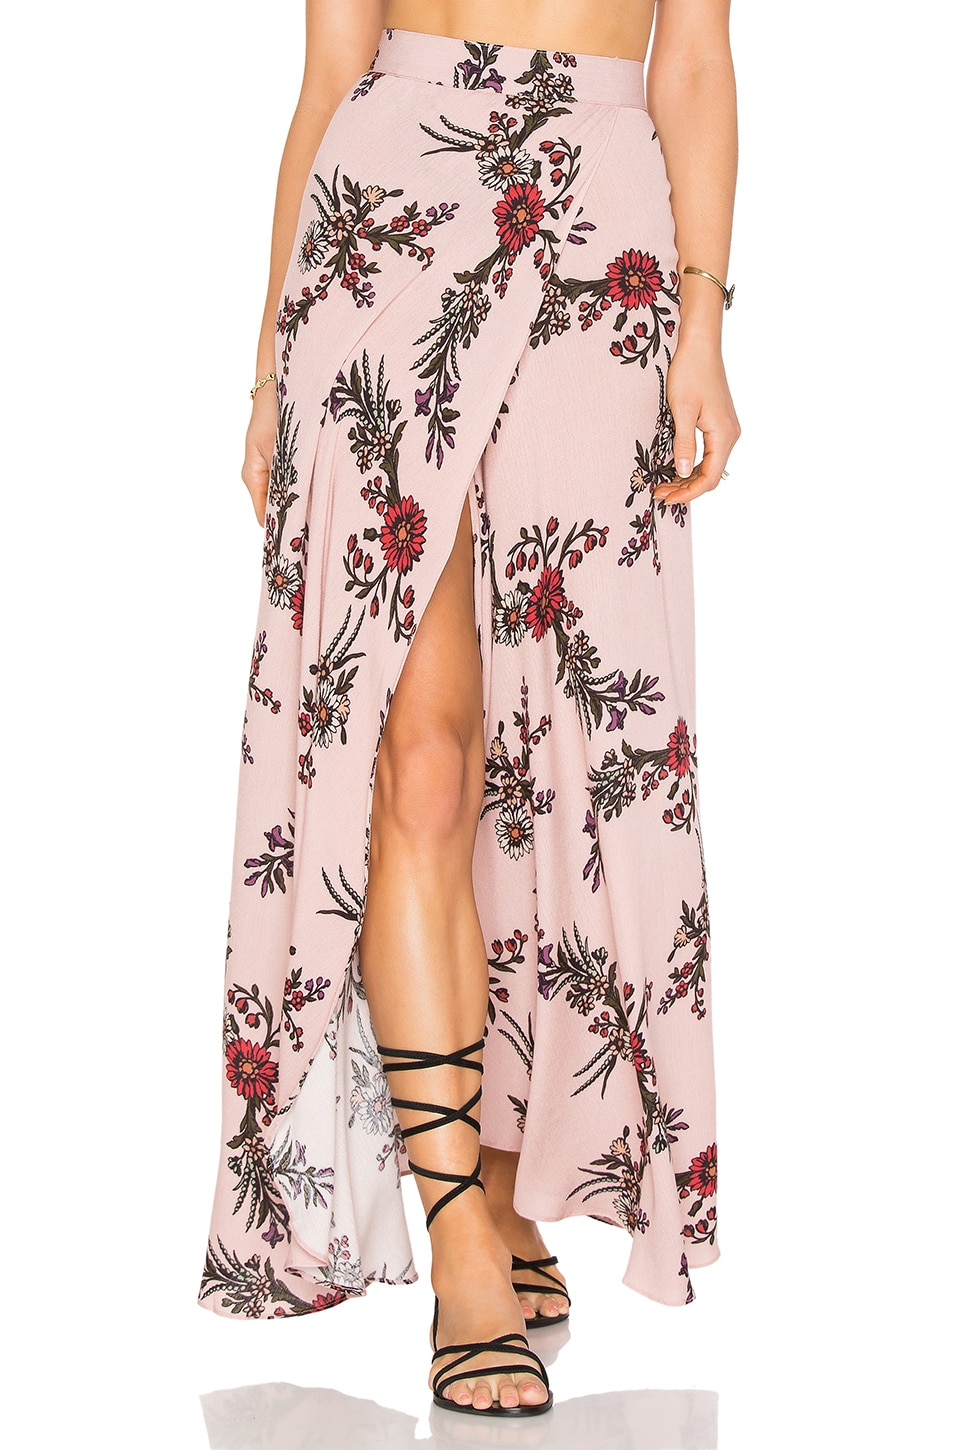 FLYNN SKYE Wrap It Skirt in Sweet Desert